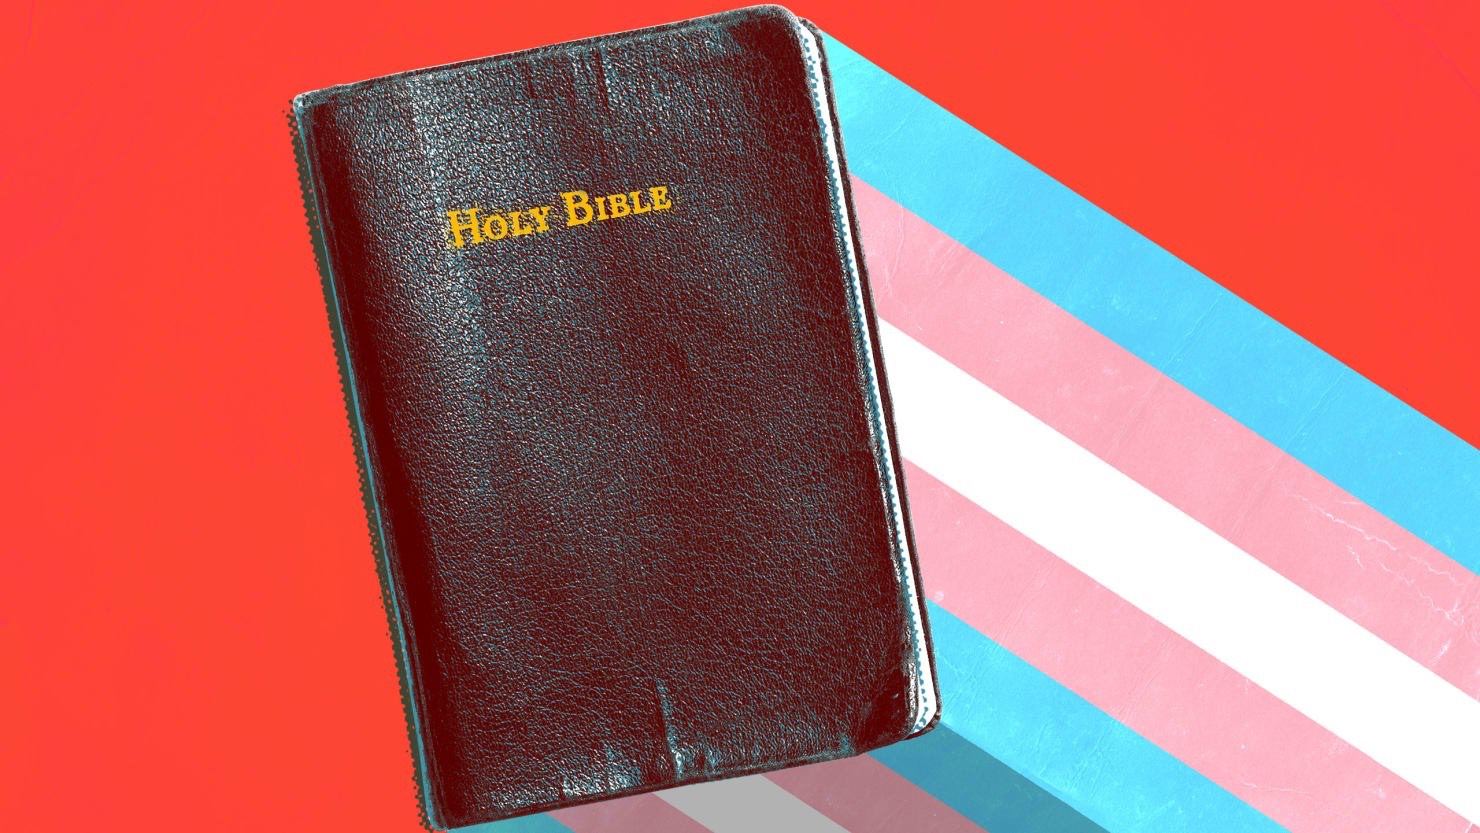 Call for Submissions: The Bible: Transgender and Genderqueer Perspectives